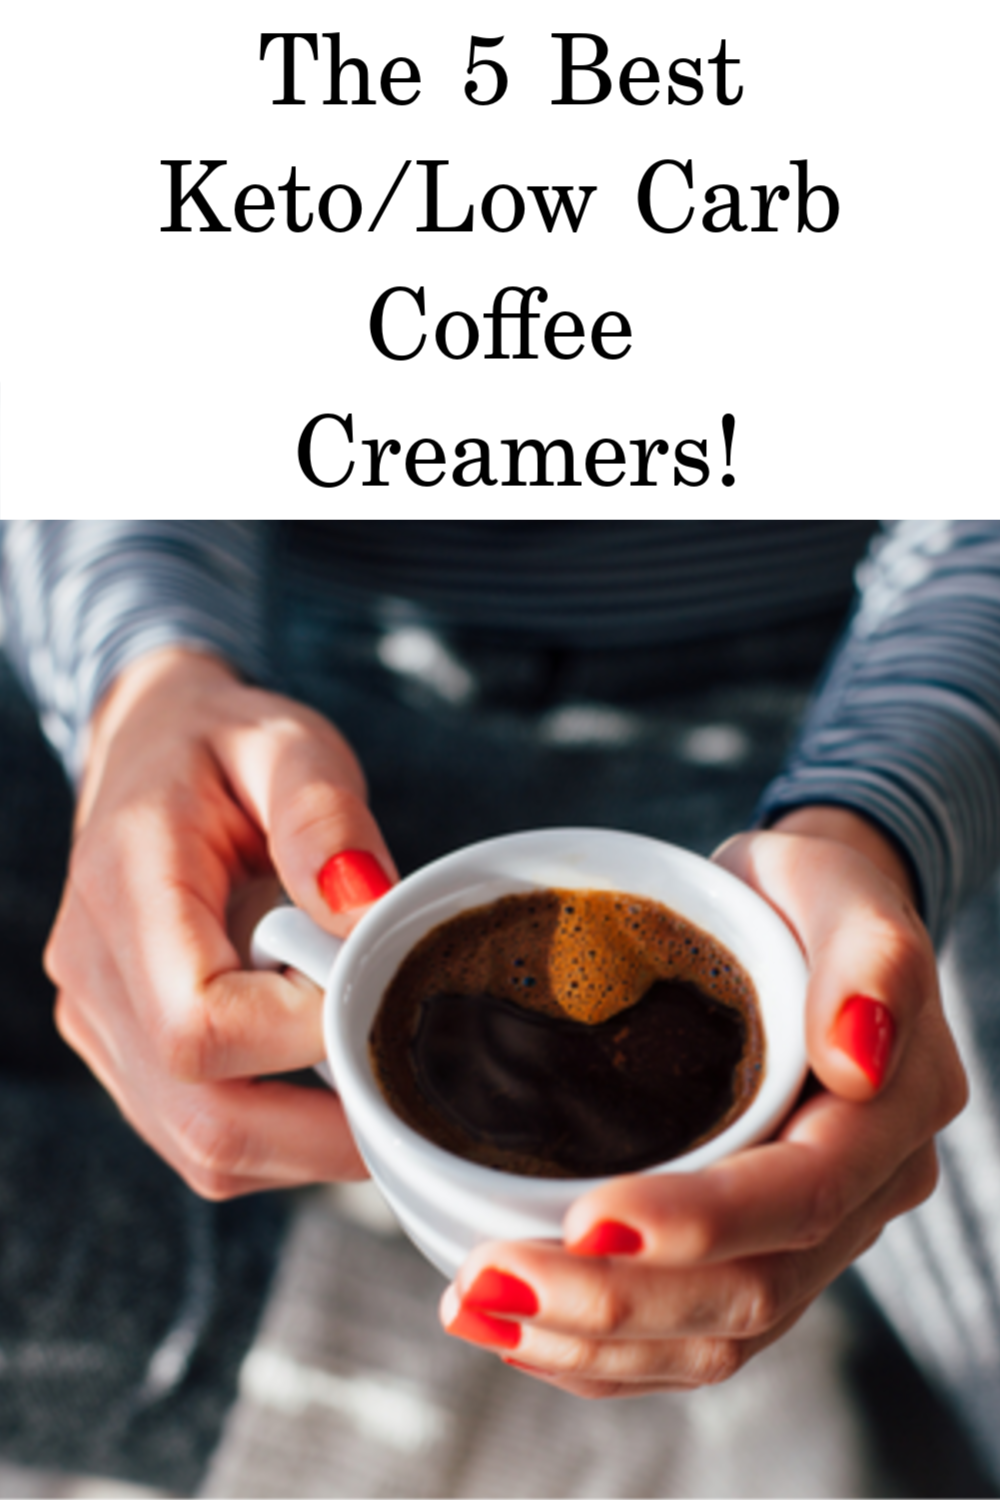 Low Carb Coffee Creamer Low in Carbs, High in Flavor